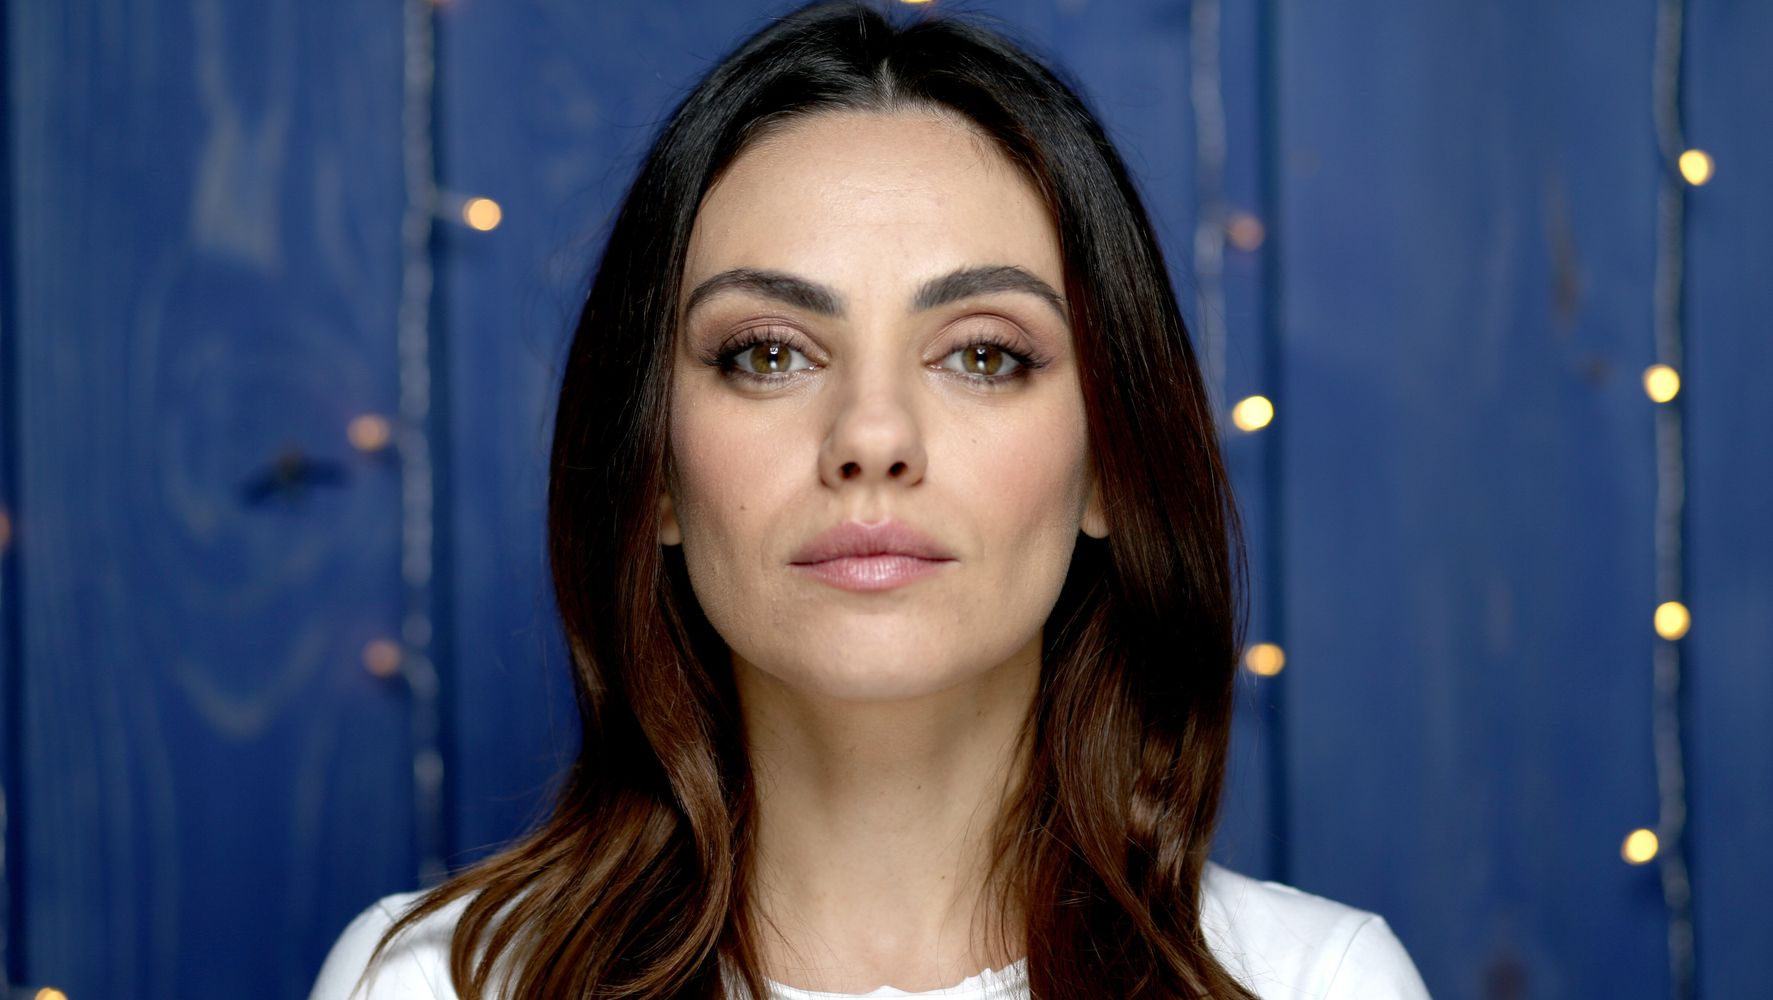 Mila Kunis Says She Encouraged Her Preschooler To Push Another Child - HuffPost